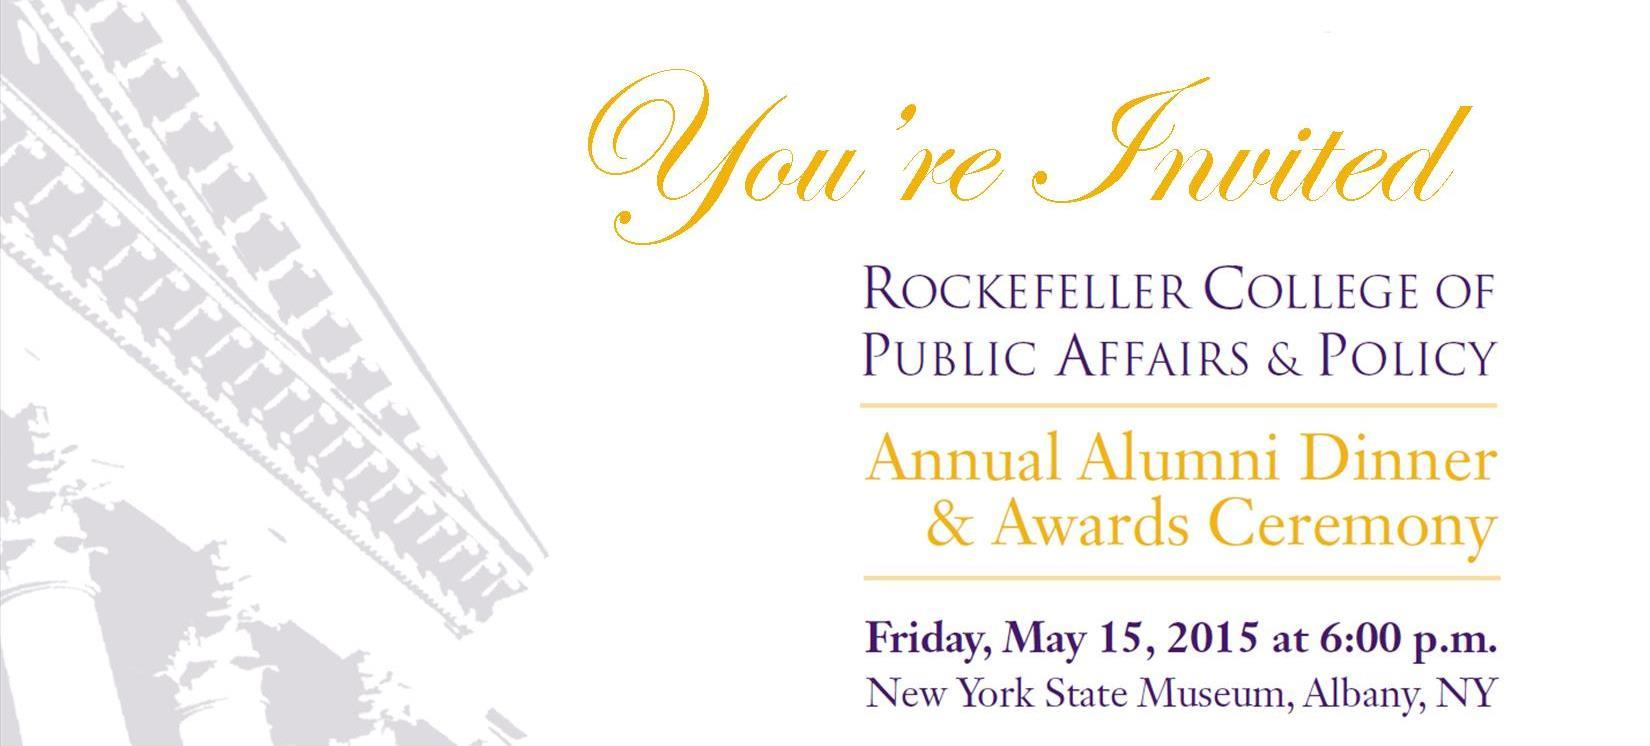 2015 Rockefeller College Alumni Dinner & Awards Ceremony